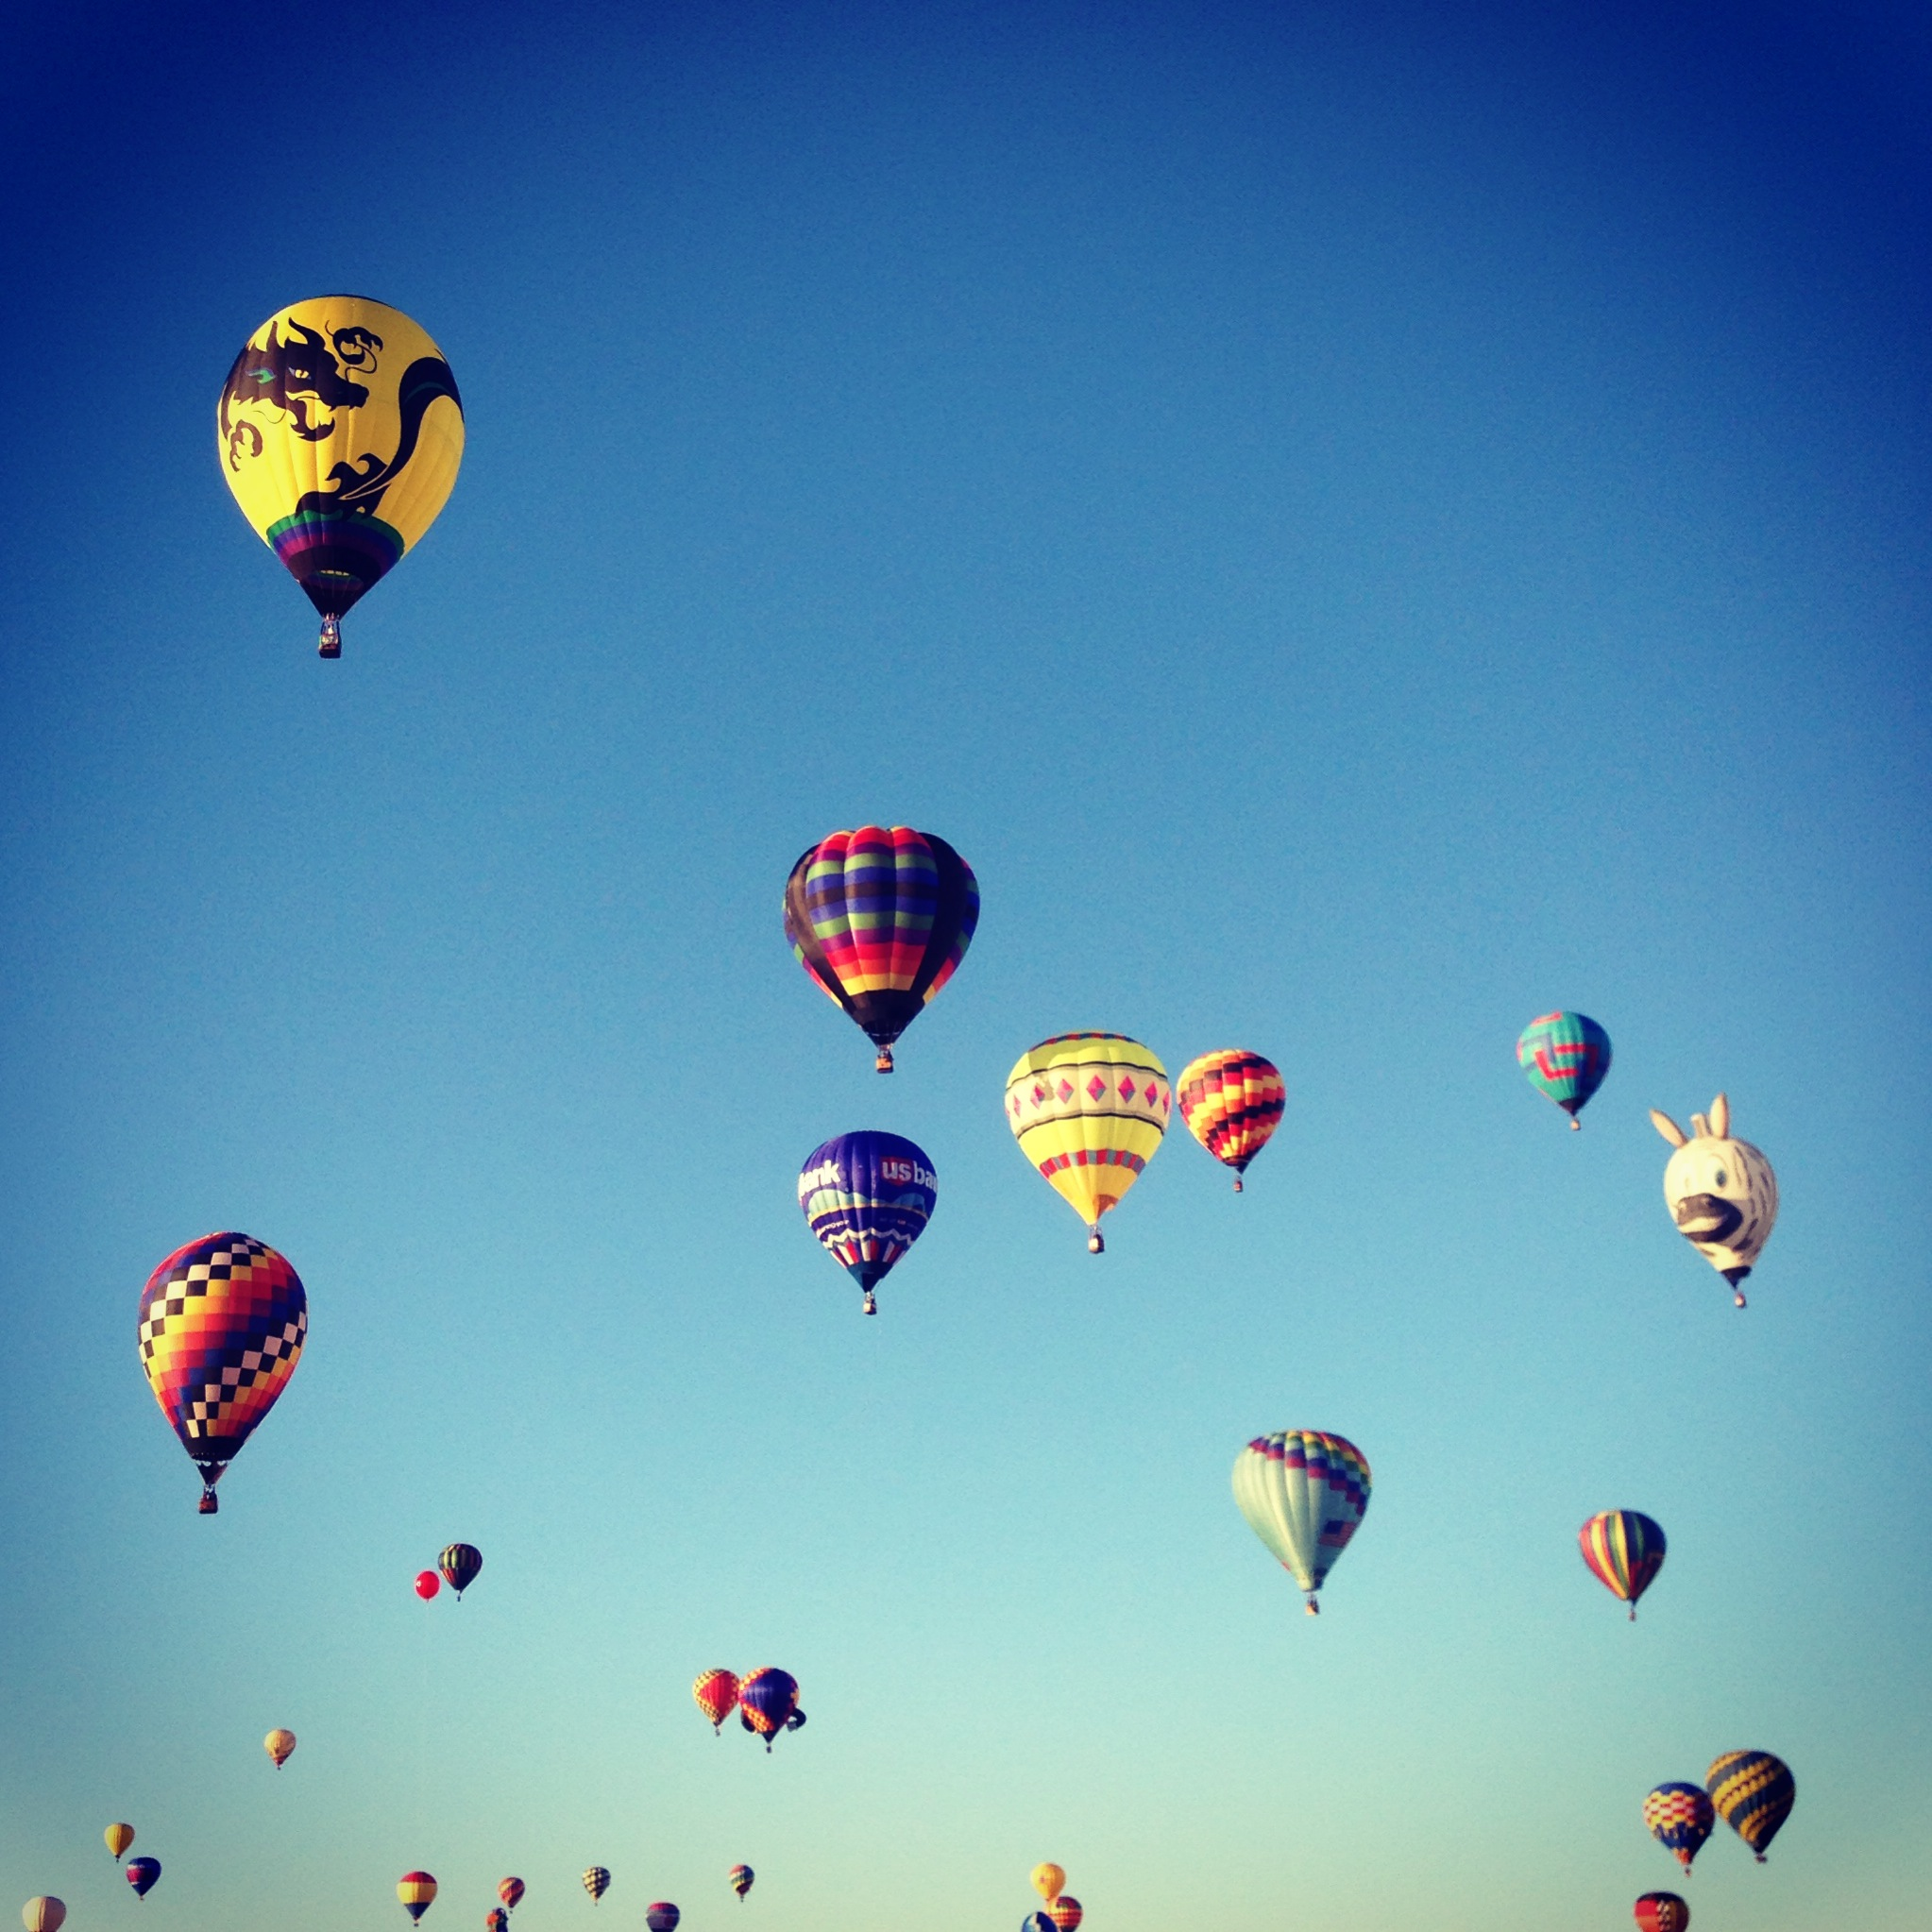 Since we're currently living in Albuquerque, we couldn't miss Balloon Fiesta. It didn't disappoint.